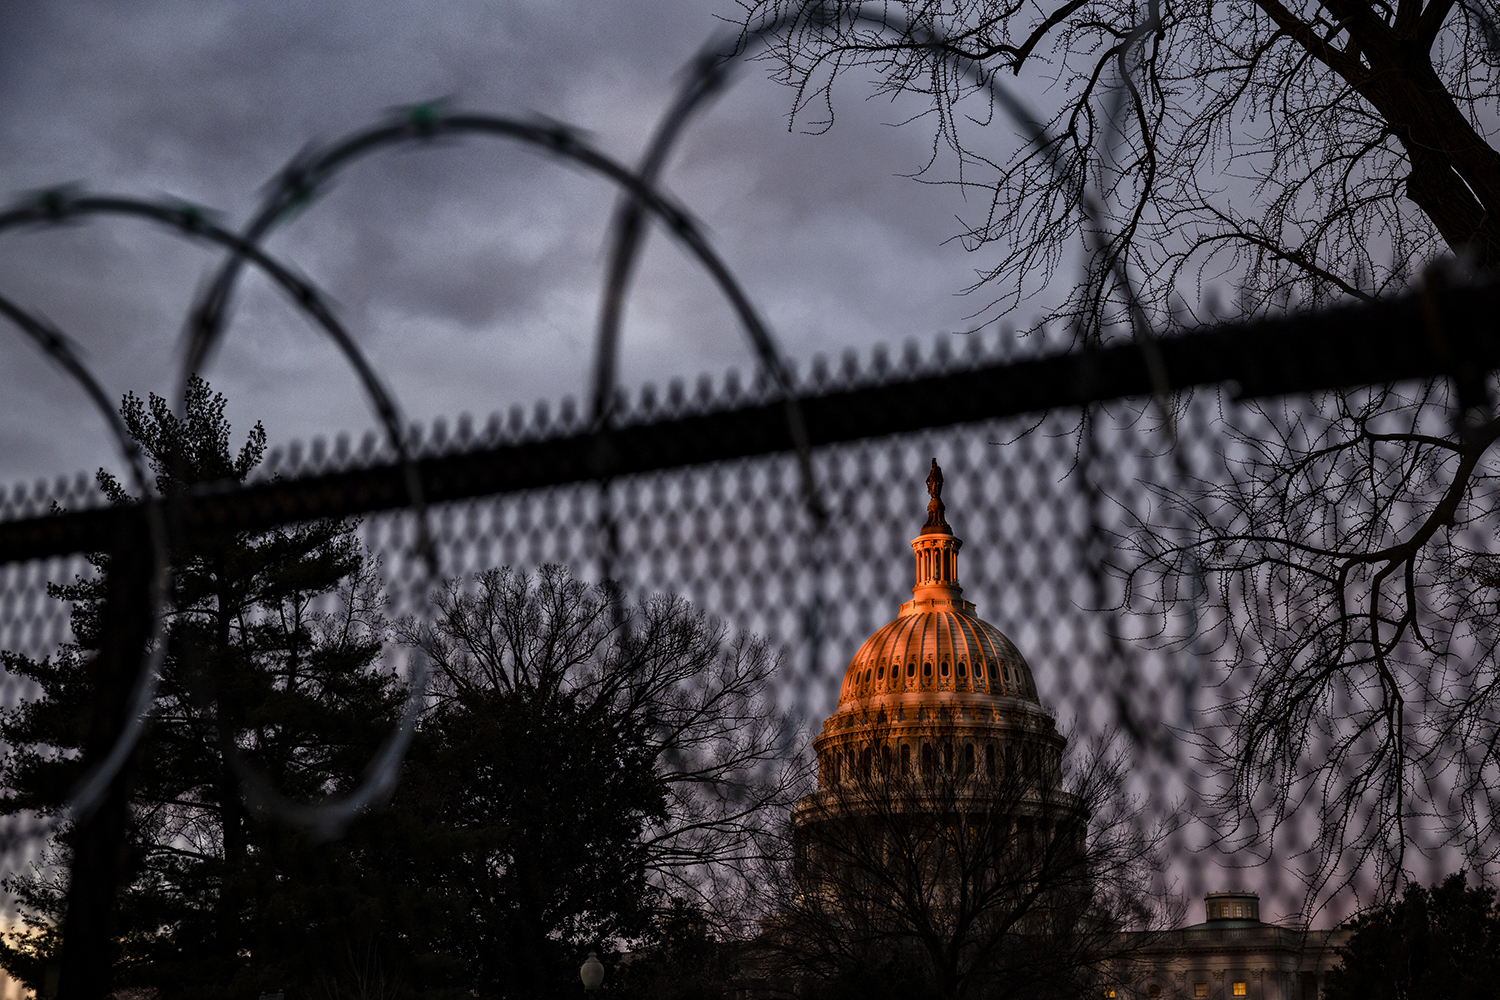 Razor wire tops the fence surrounding the U.S. Capitol in Washington as the sun rises on Jan. 17.